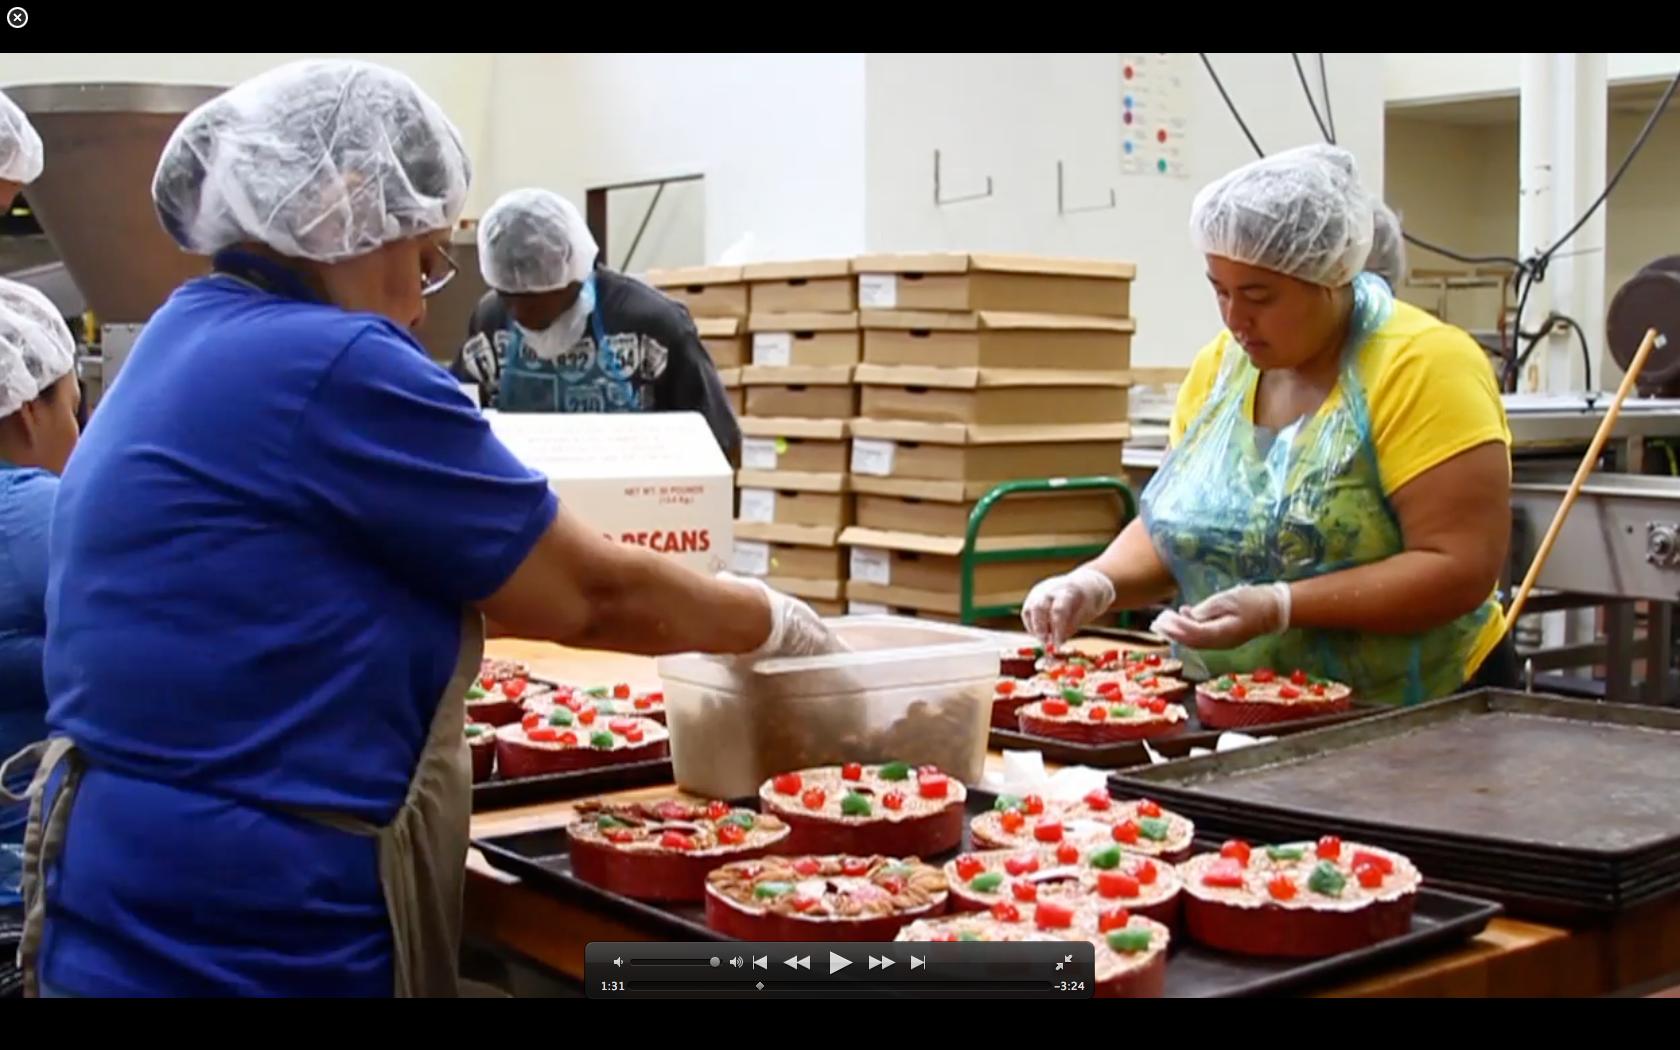 Workers on the Fruitcake Line at Collin Street Bakery